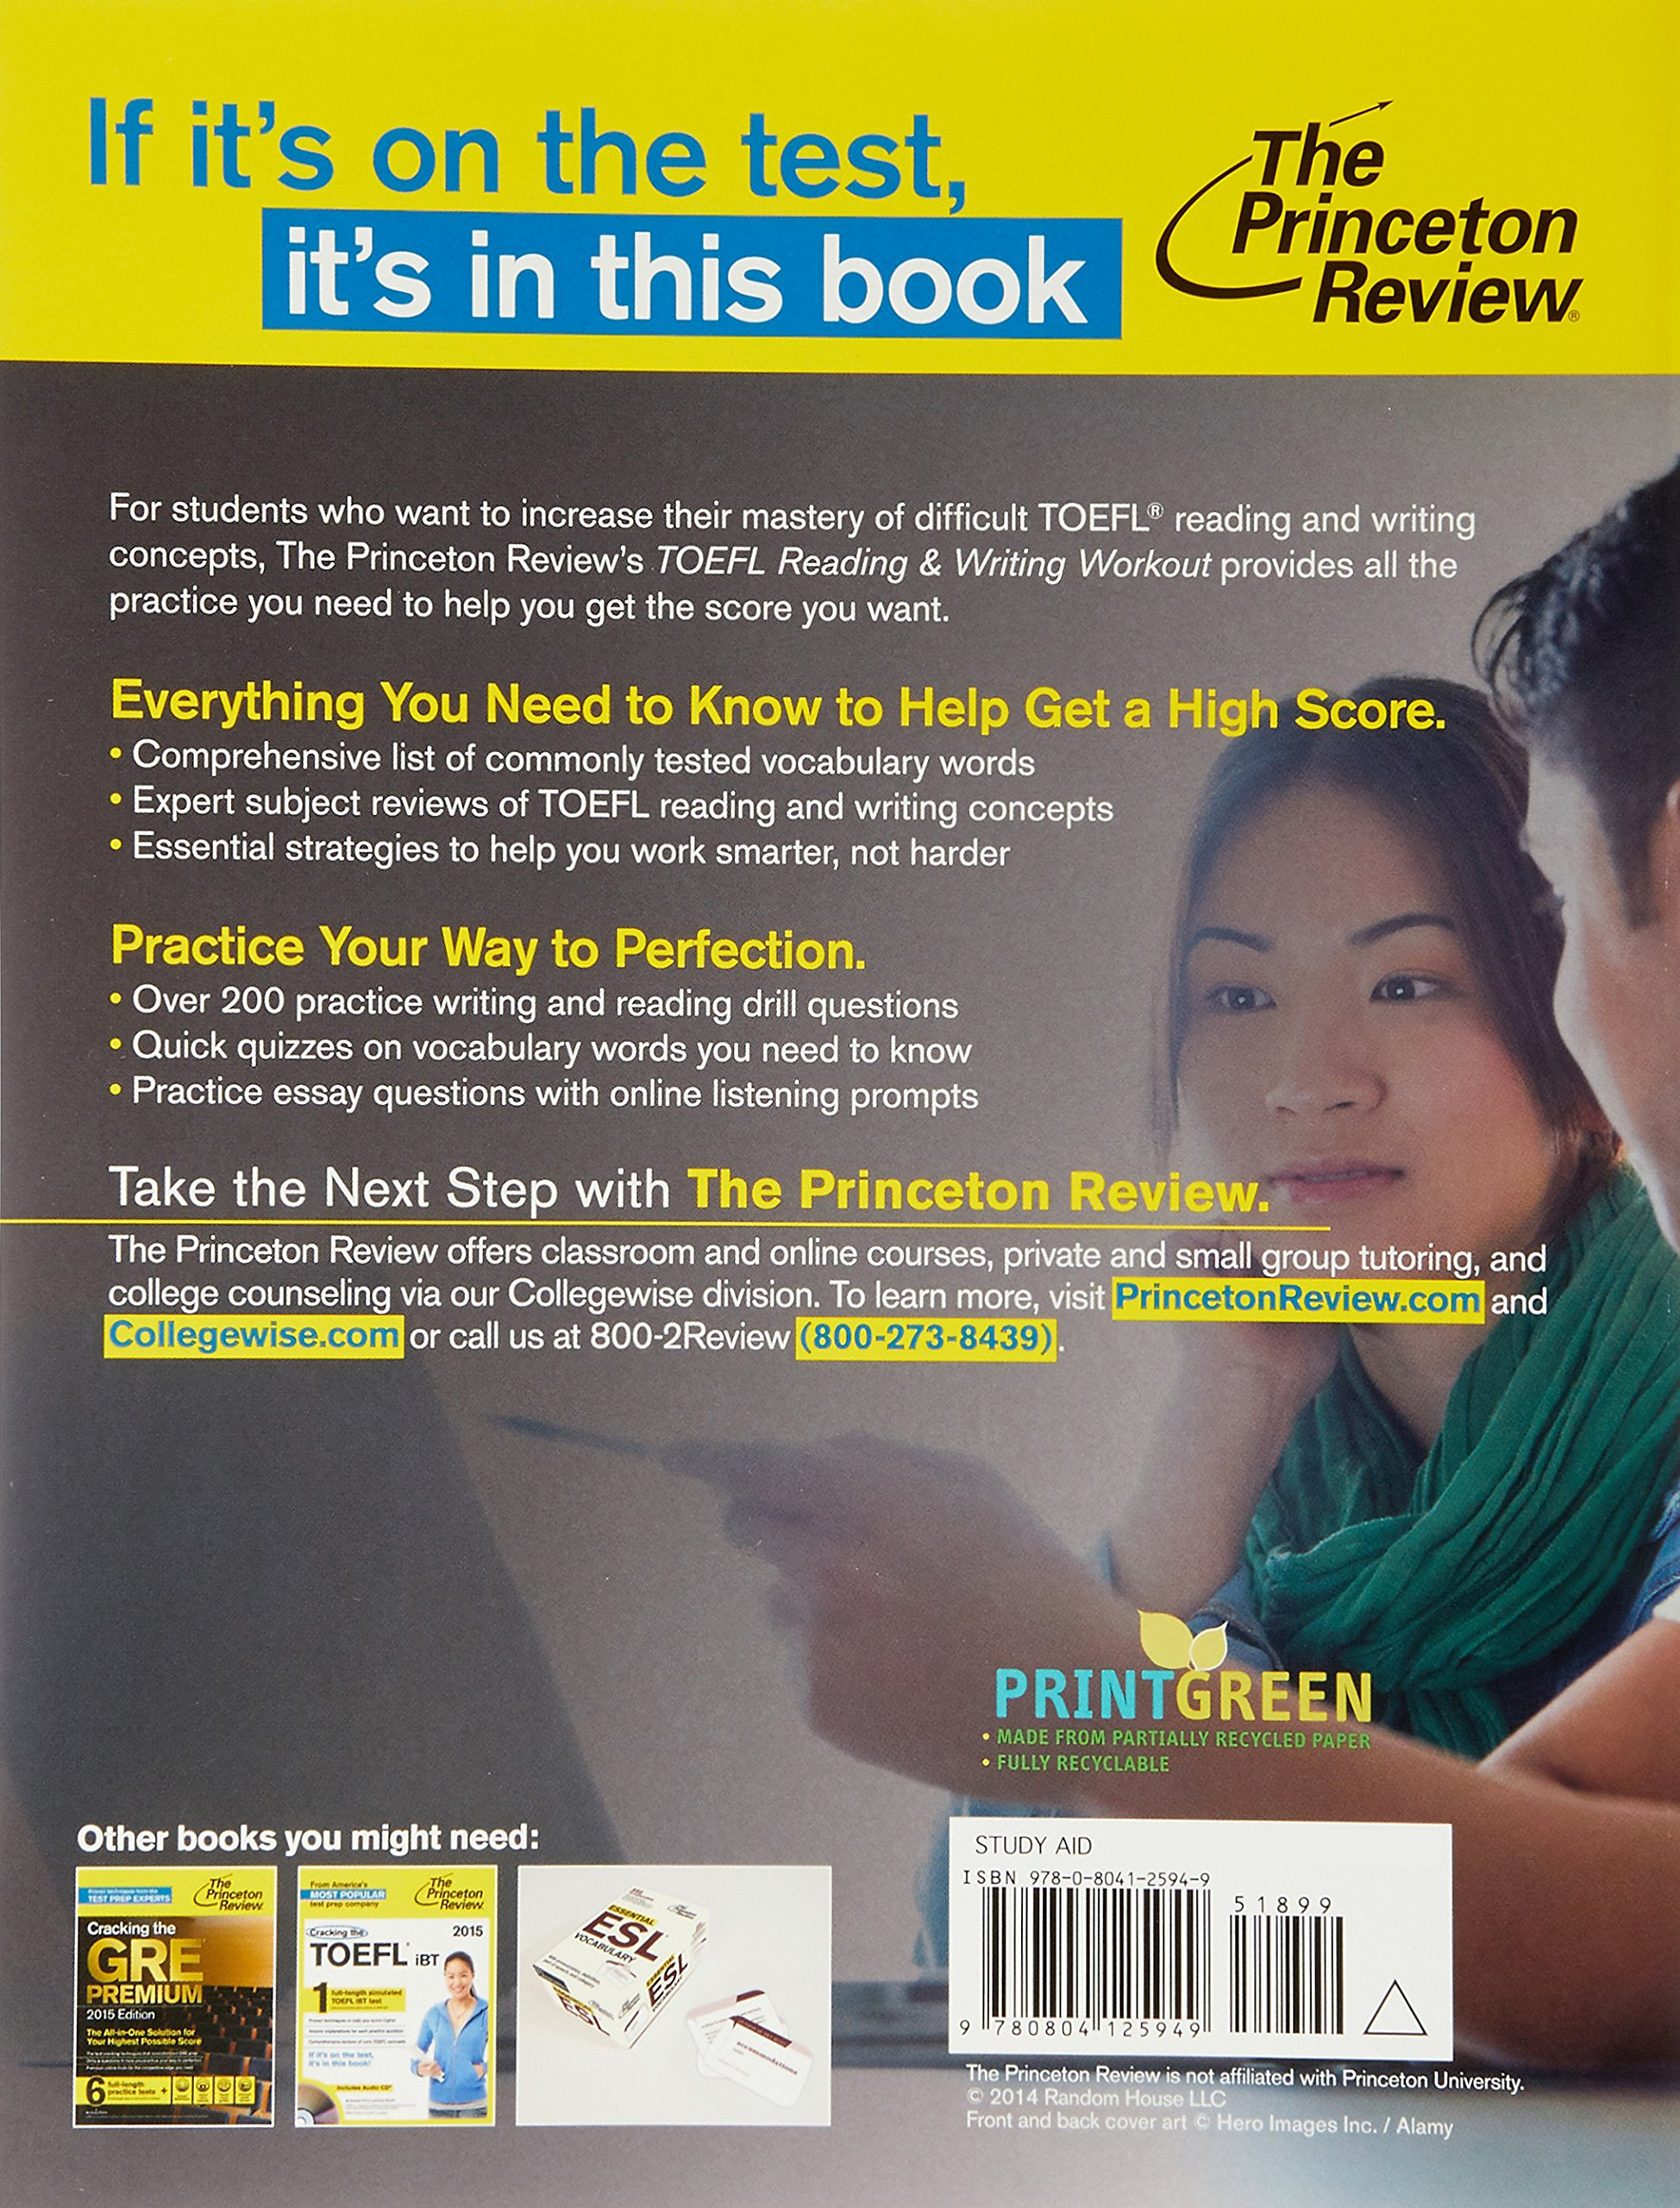 TOEFL Reading & Writing Workout: The Essential Practice You Need for the TOEFL  Scores You Want: Princeton Review: 9780804125949: Books - Amazon.ca